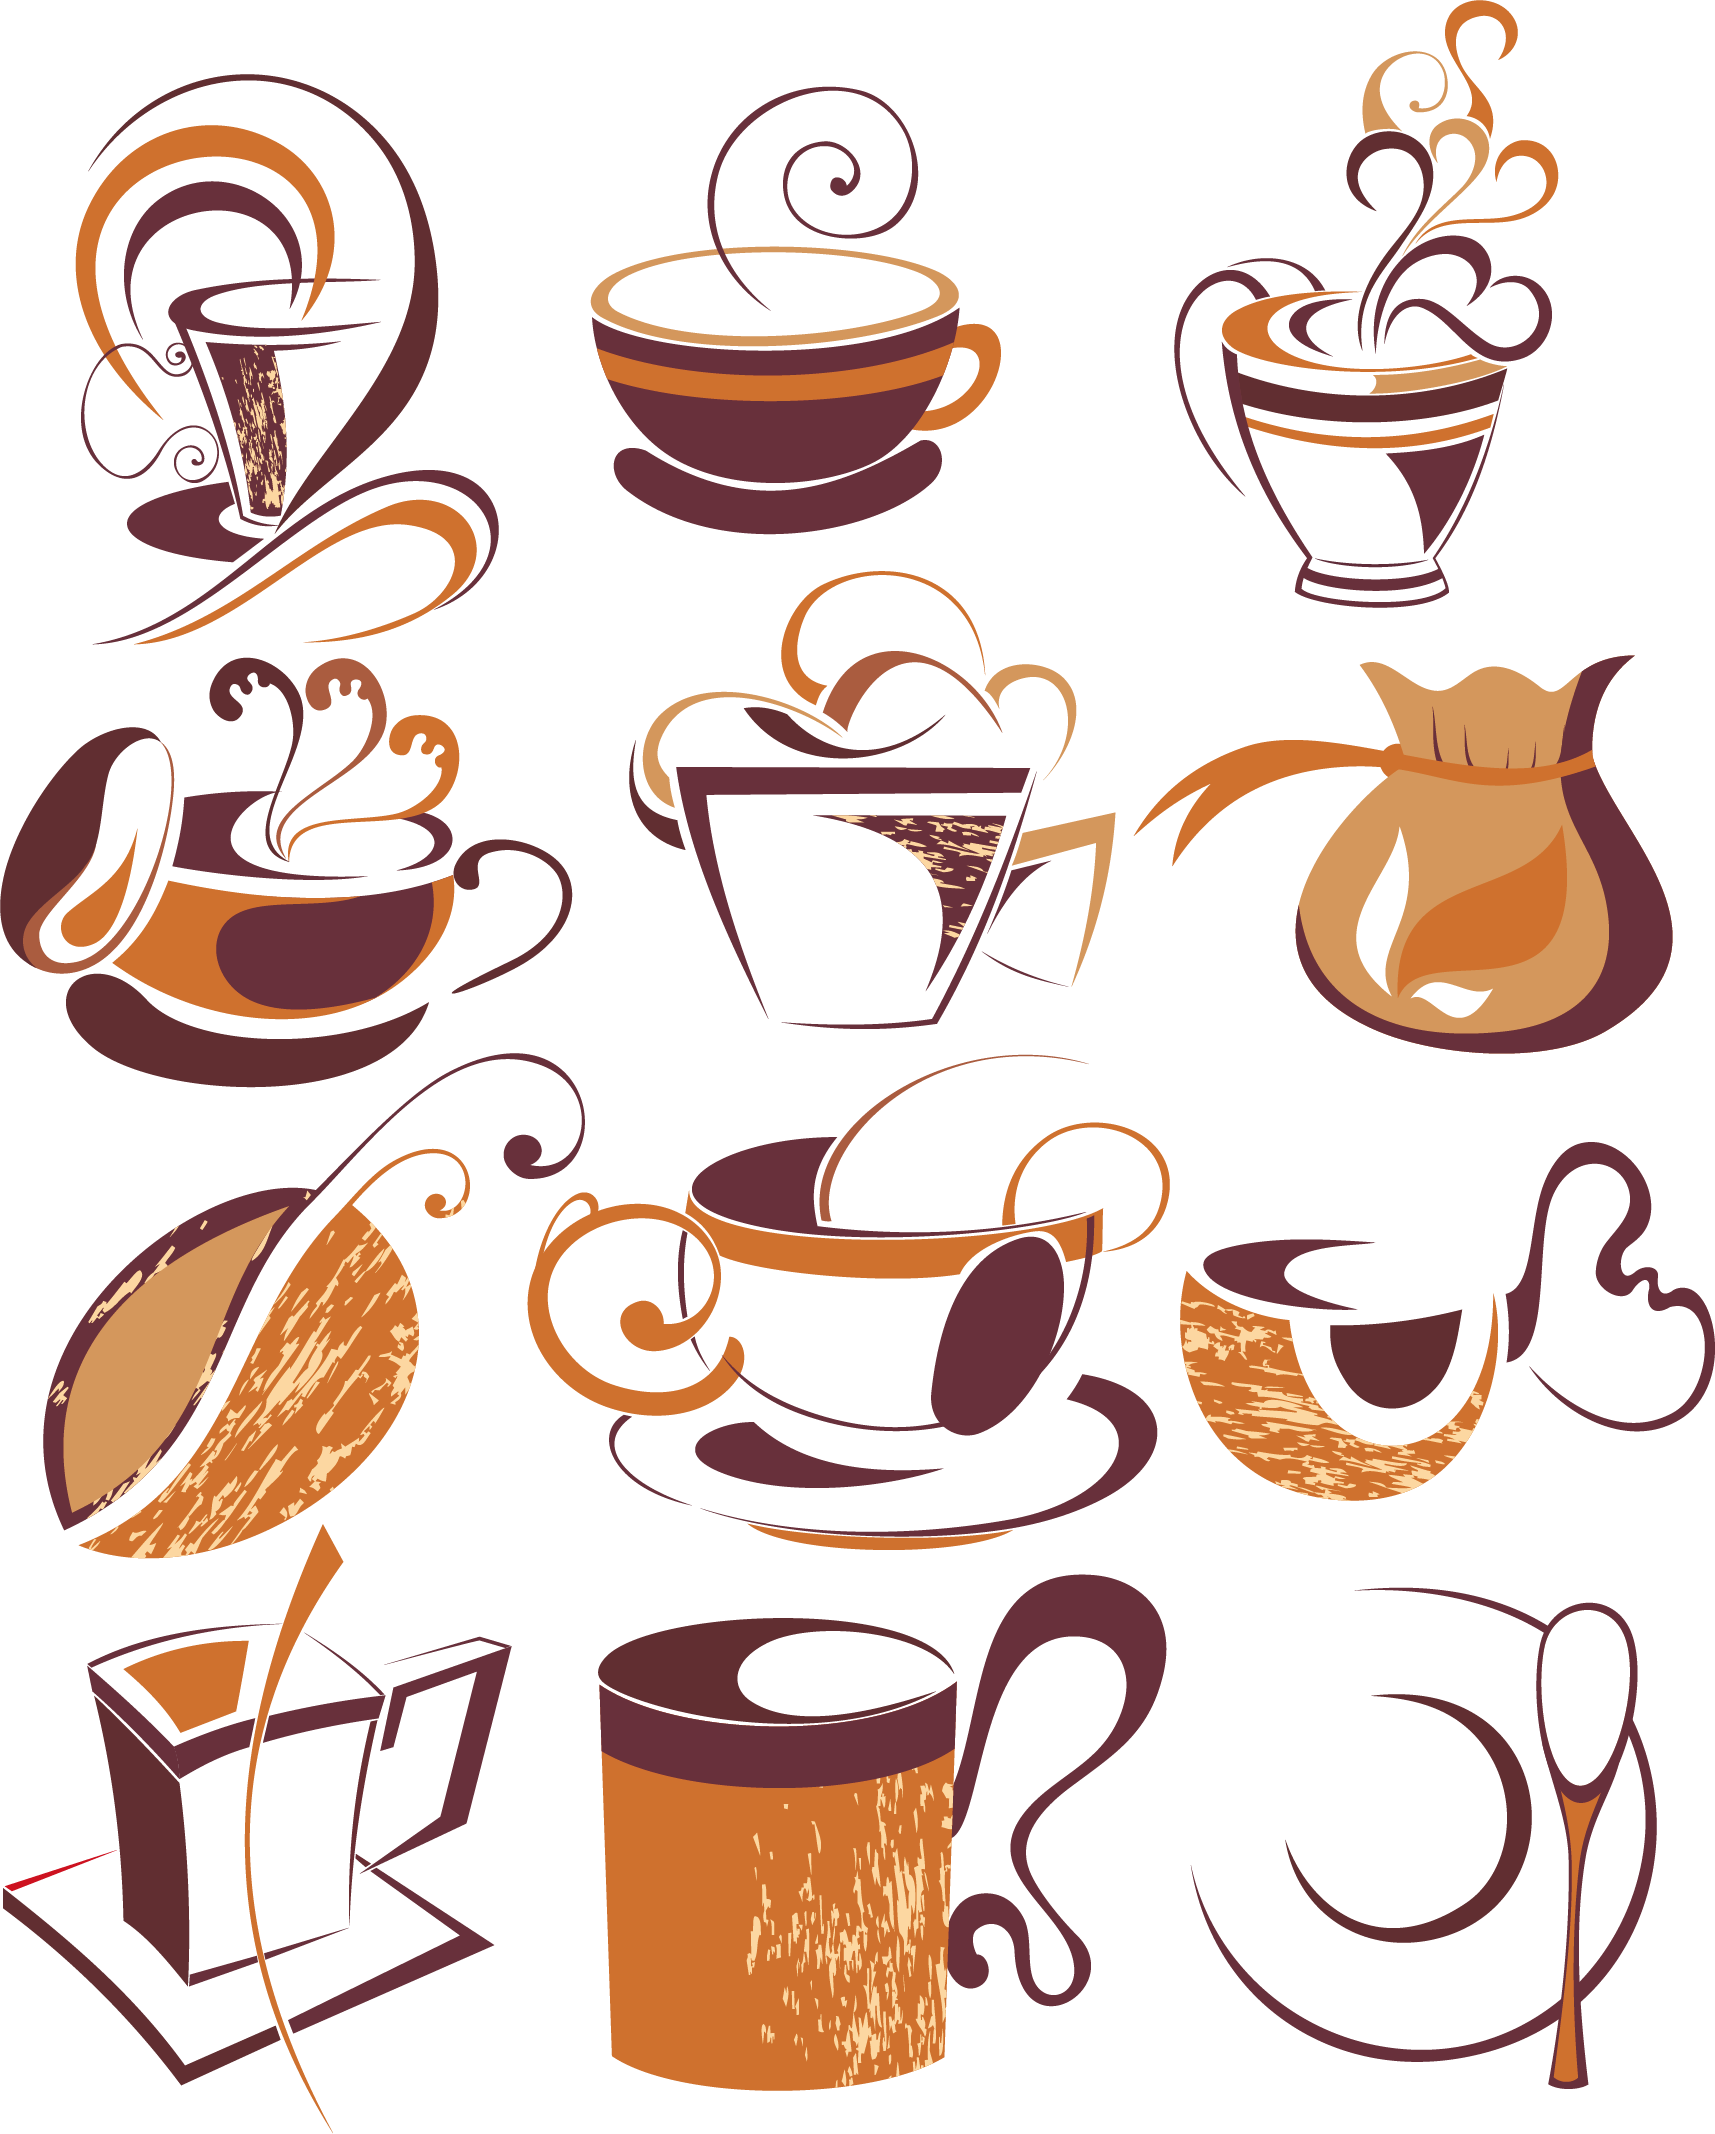 Coffee mug with heart clipart svg royalty free library Turkish coffee Cappuccino Cafe Coffee cup - Artwork coffee element ... svg royalty free library